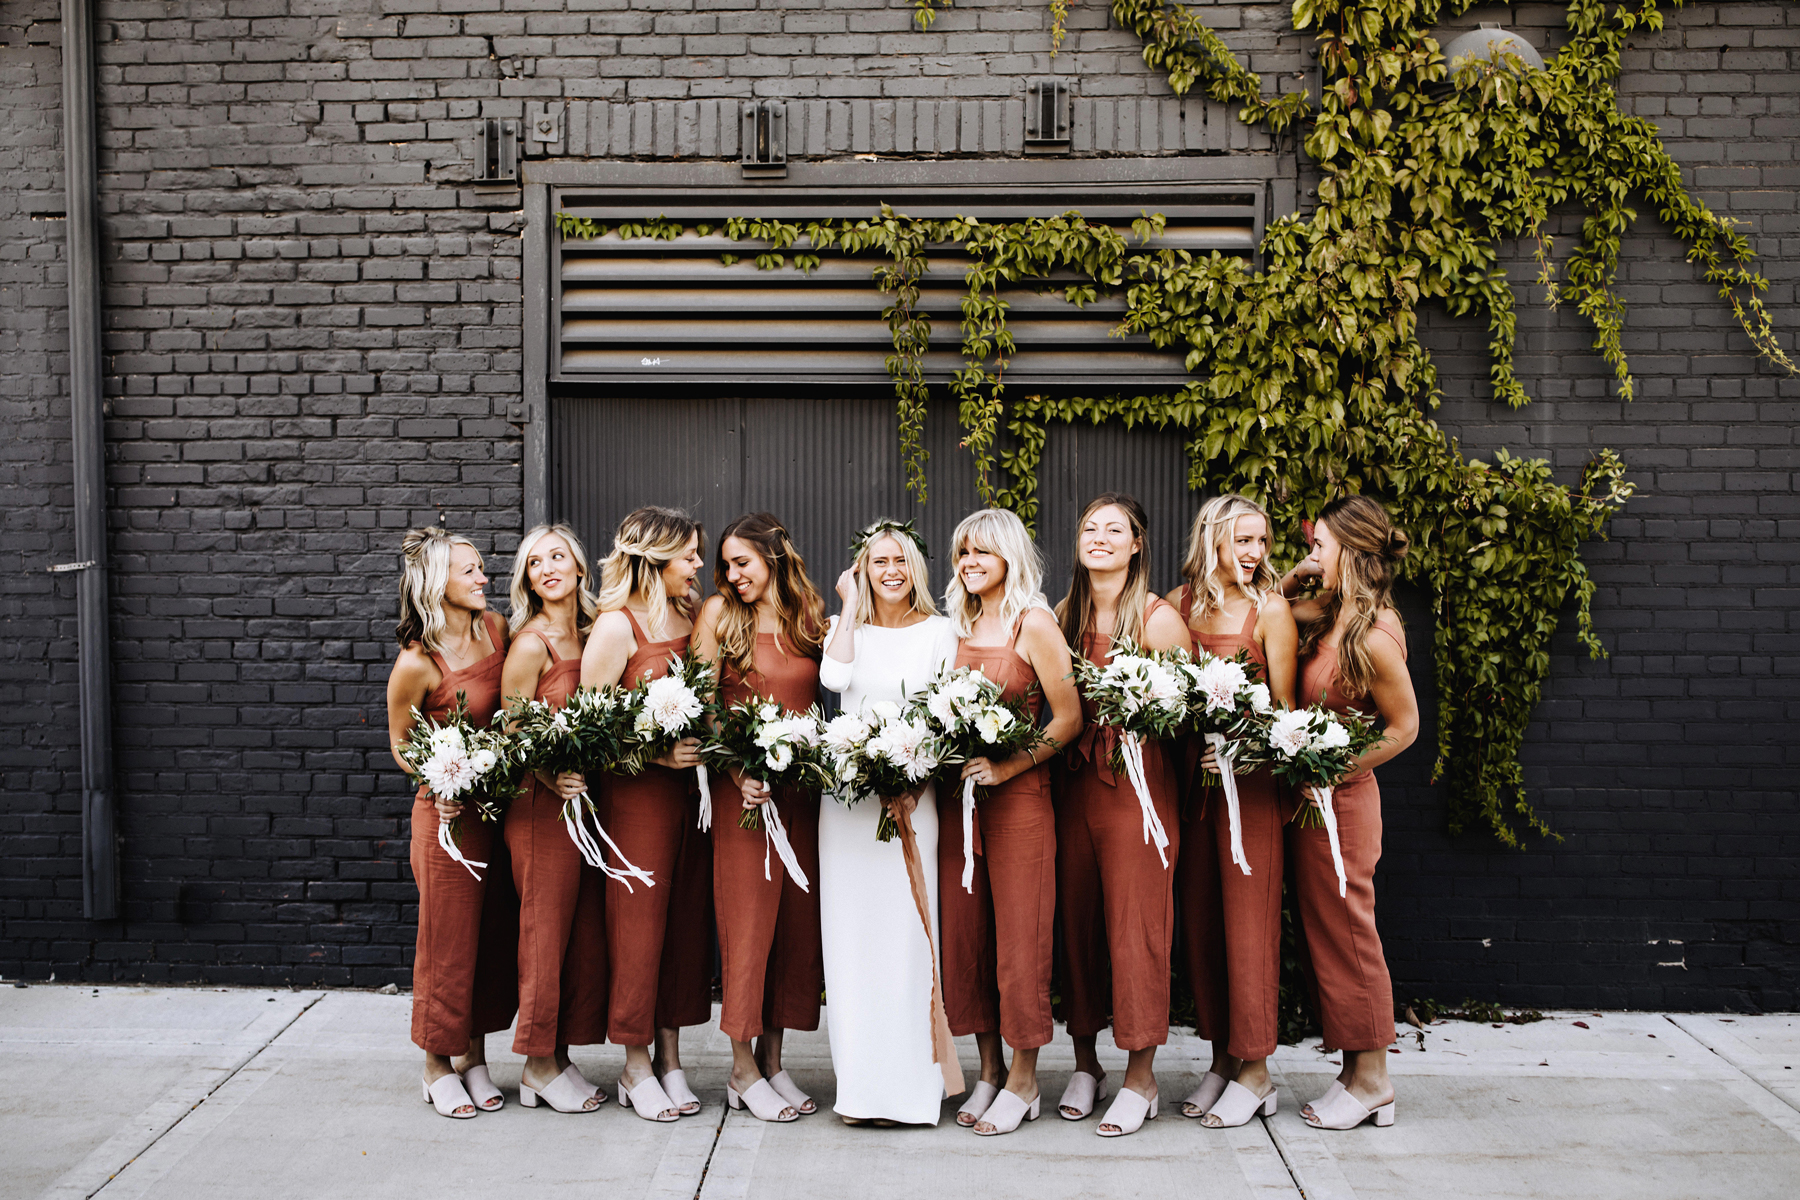 20 Wedding Parties That Prove Bridesmaids' Jumpsuits Are Just as Beautiful  as Dresses | Martha Stewart